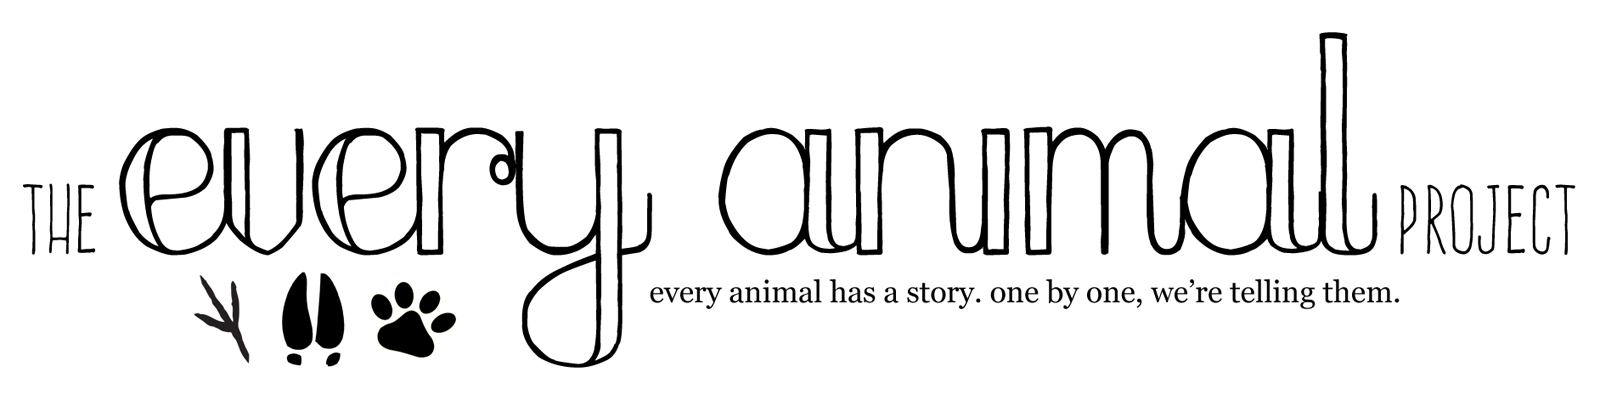 The Every Animal Project